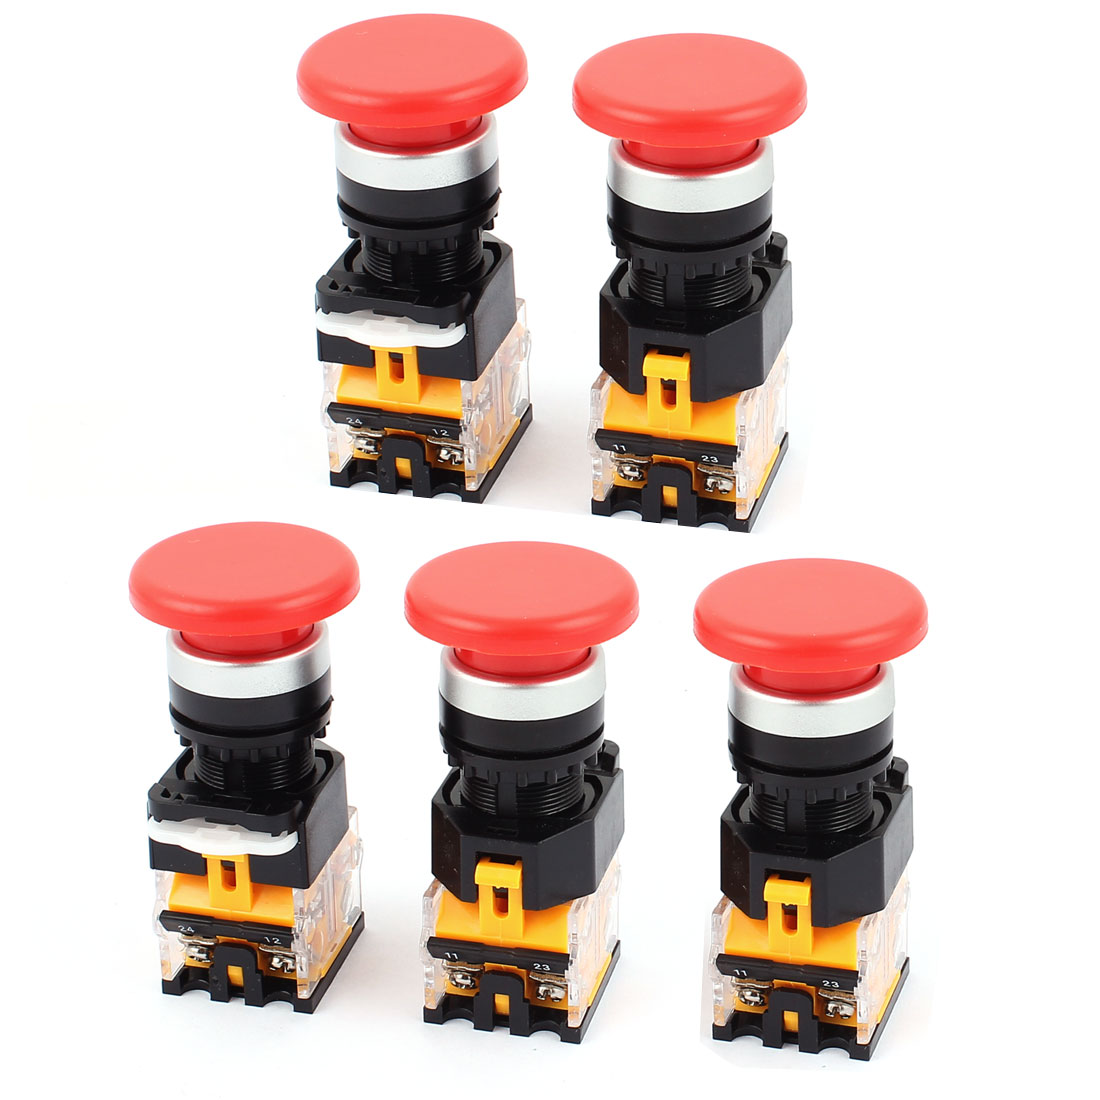 5pcs AC 660V 10A NO/NC 4Pin Mushroom Emergency Stop Red Push Button Switch